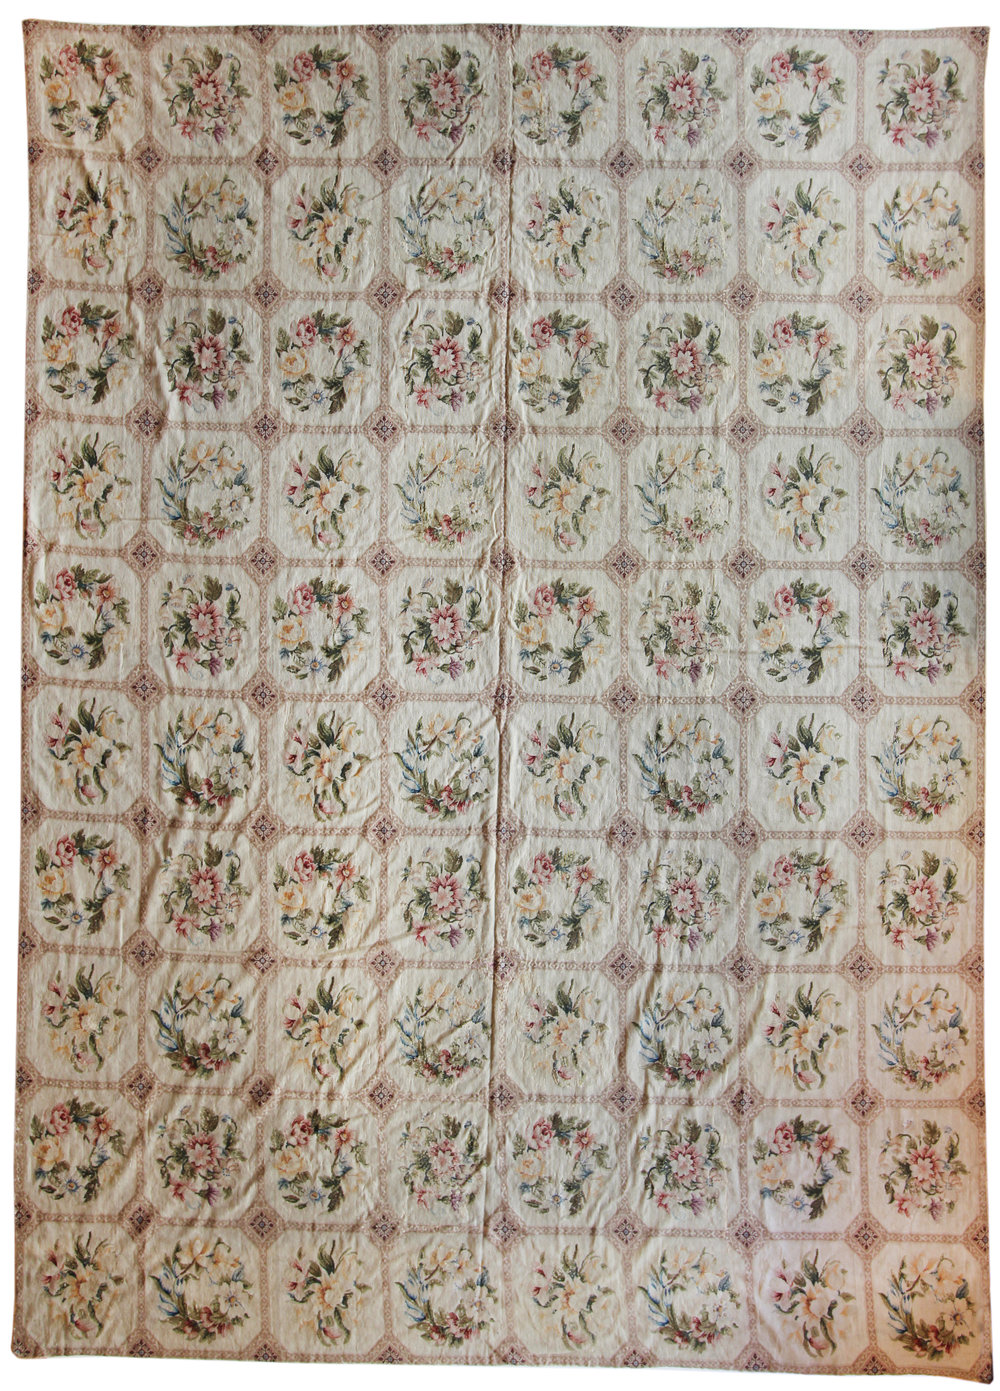 516 English Needlepoint, circa 1880 10'x14'